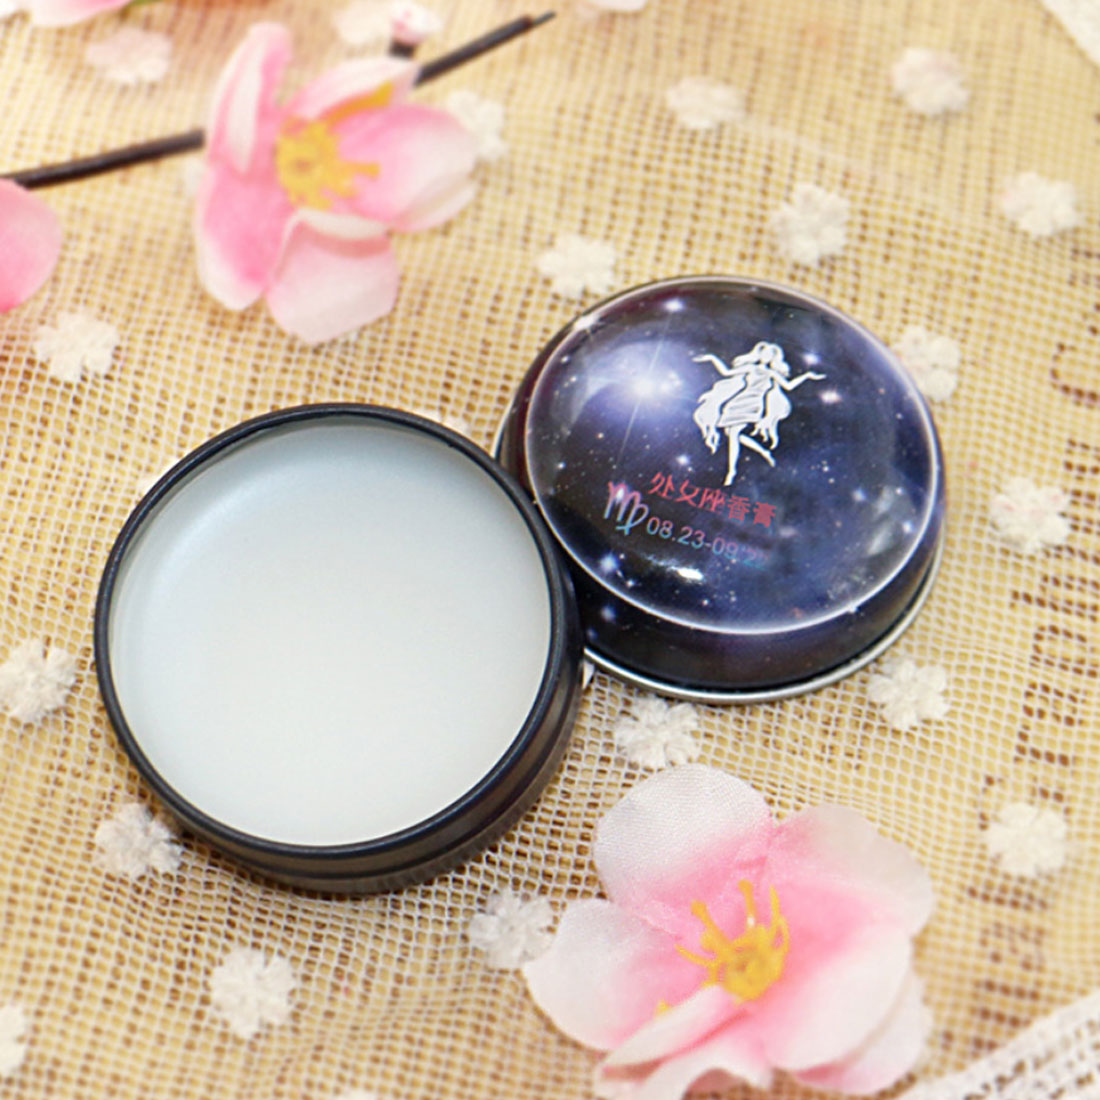 Mini 1 PC Unisex Magic Zodiac Fragrance 12 Signs Constellation Deodorant Perfumed Solid Portable Tin Box Balm